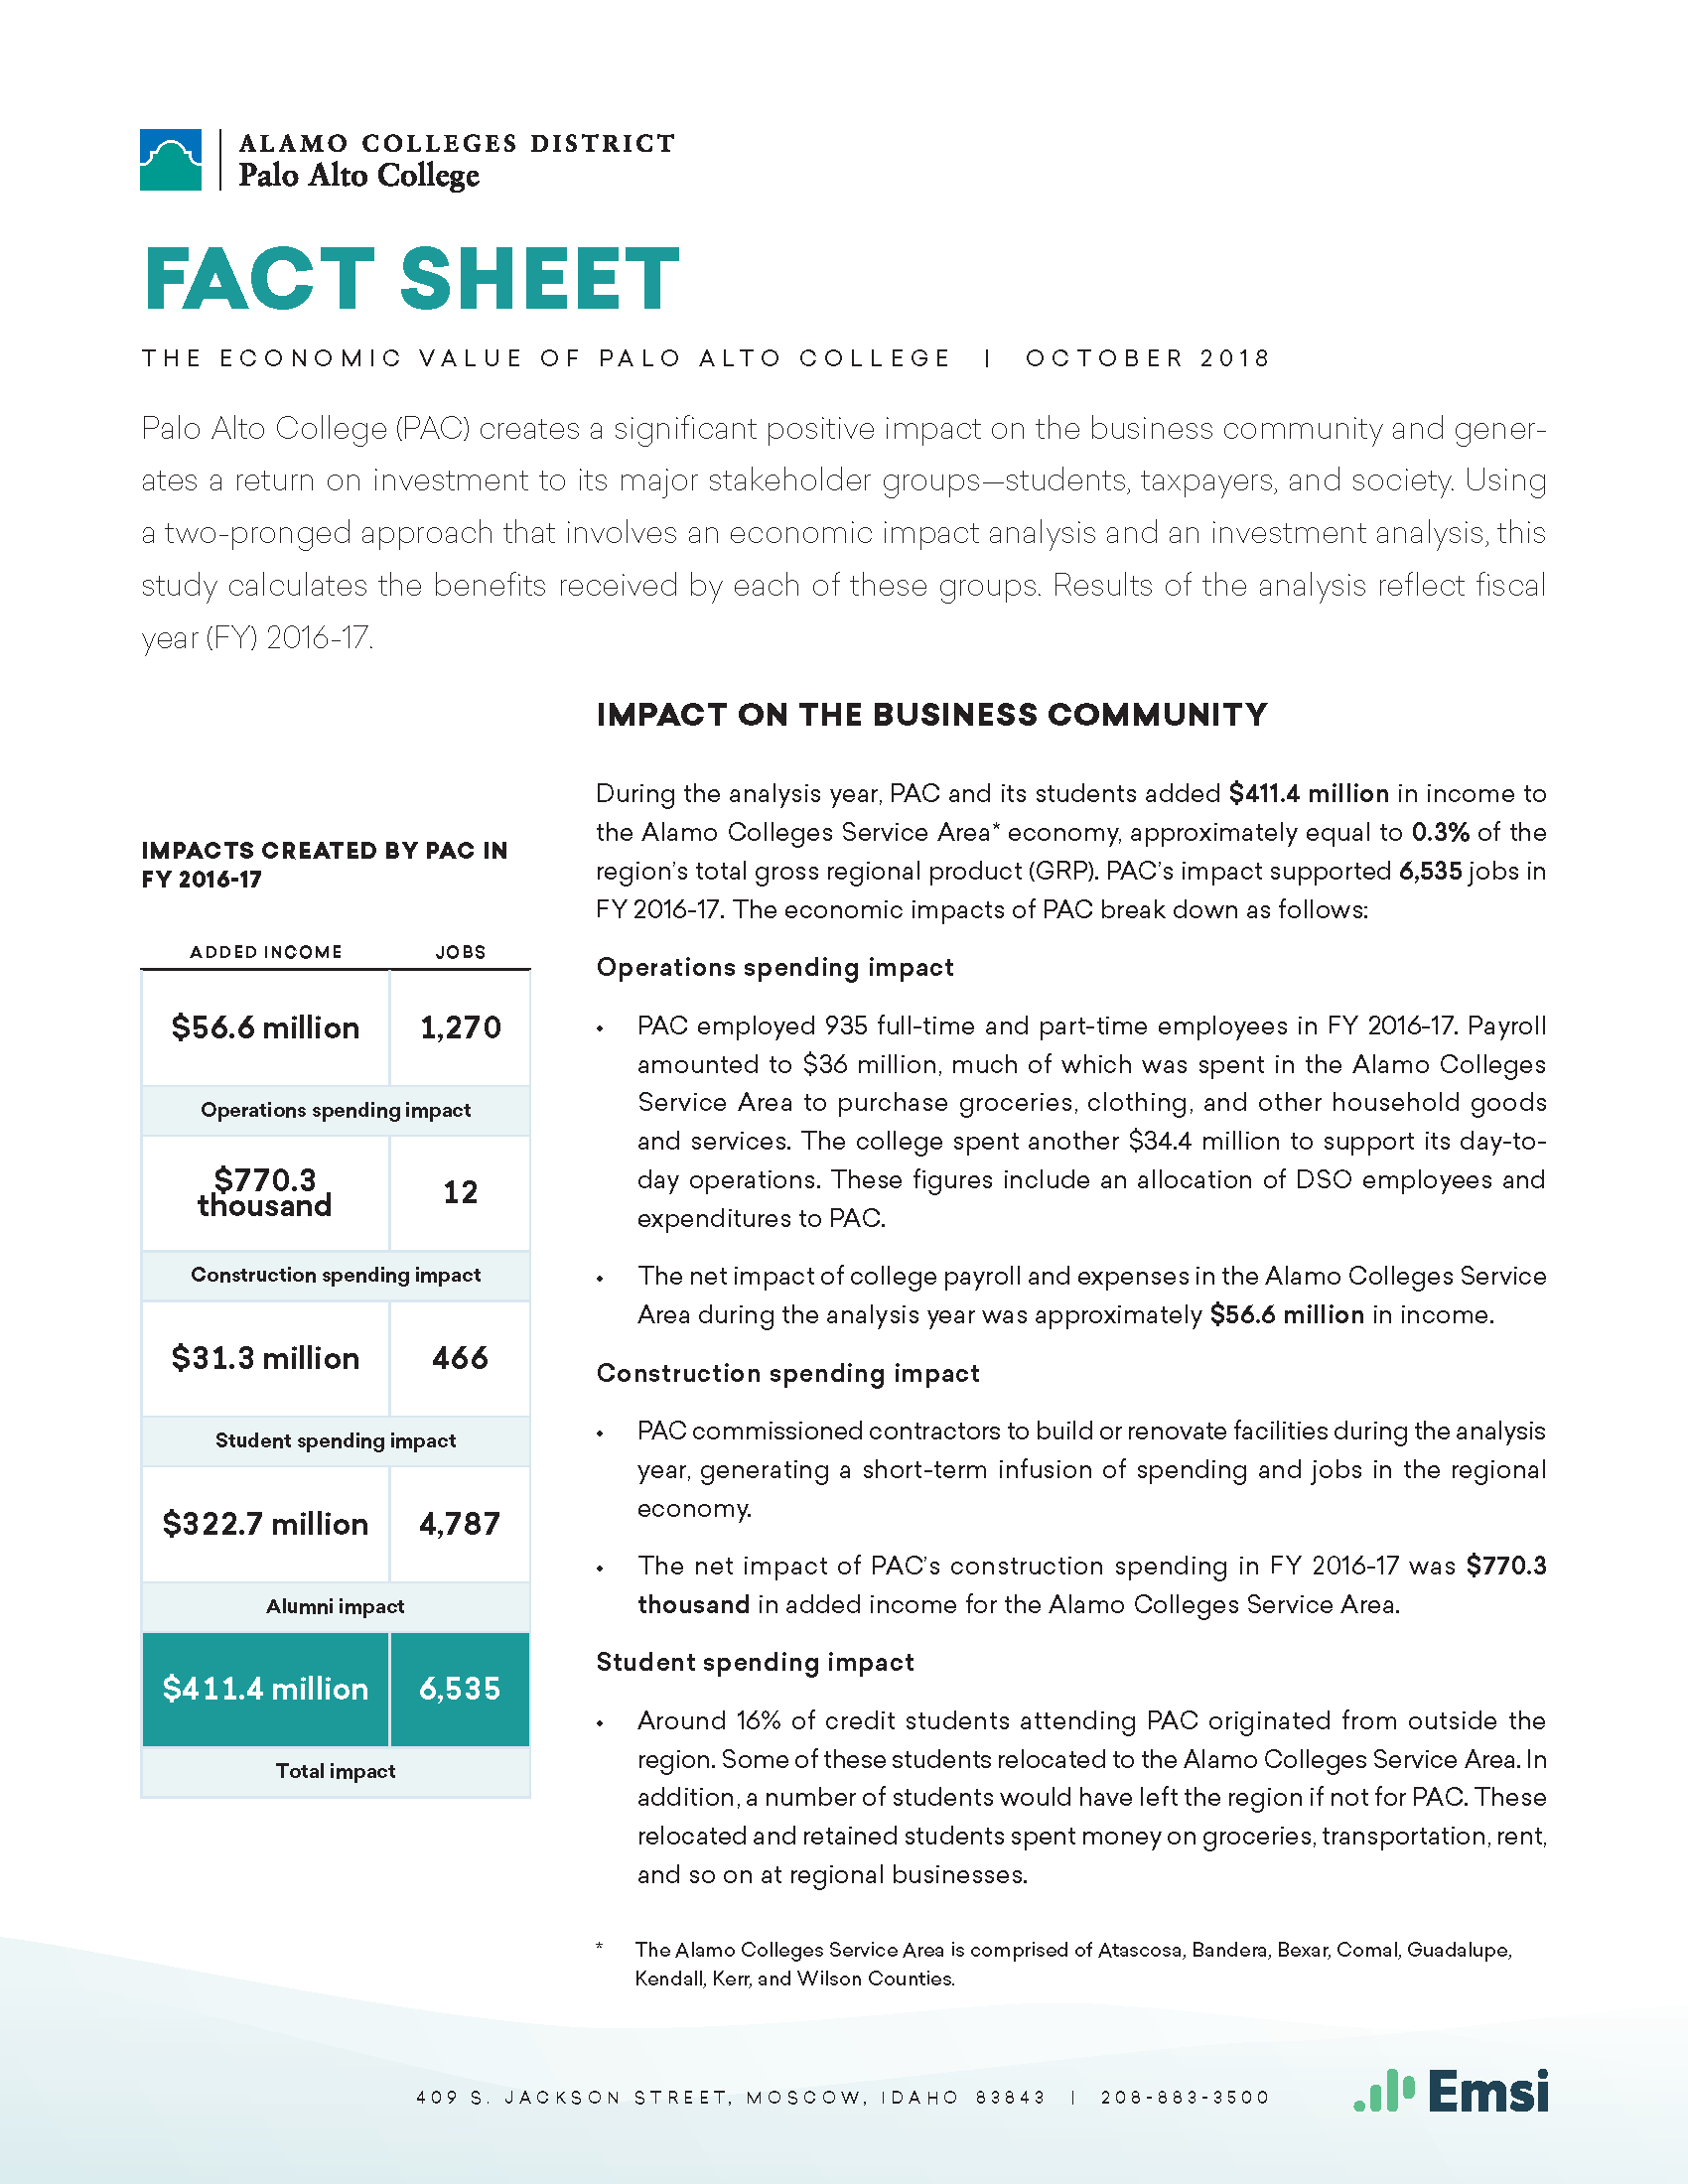 Palo Alto College Fact Sheet Front Page Image